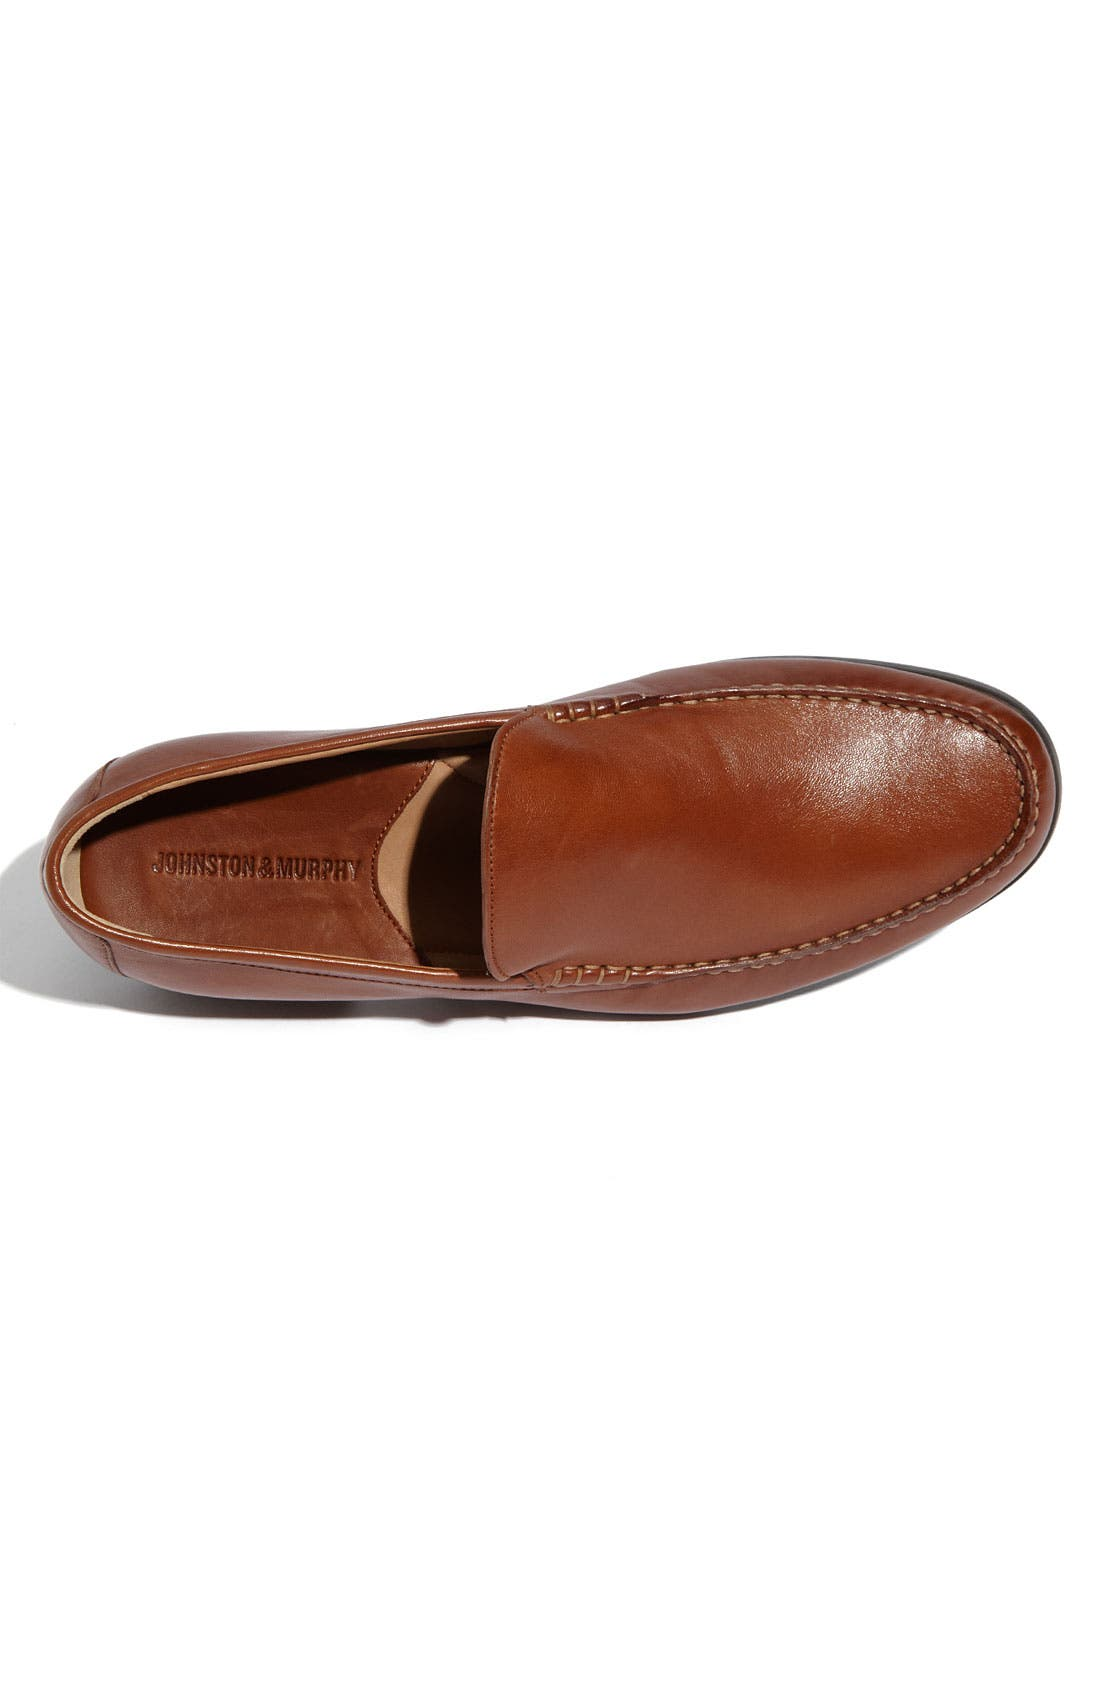 'Creswell' Venetian Slip-On,                             Alternate thumbnail 3, color,                             COGNAC